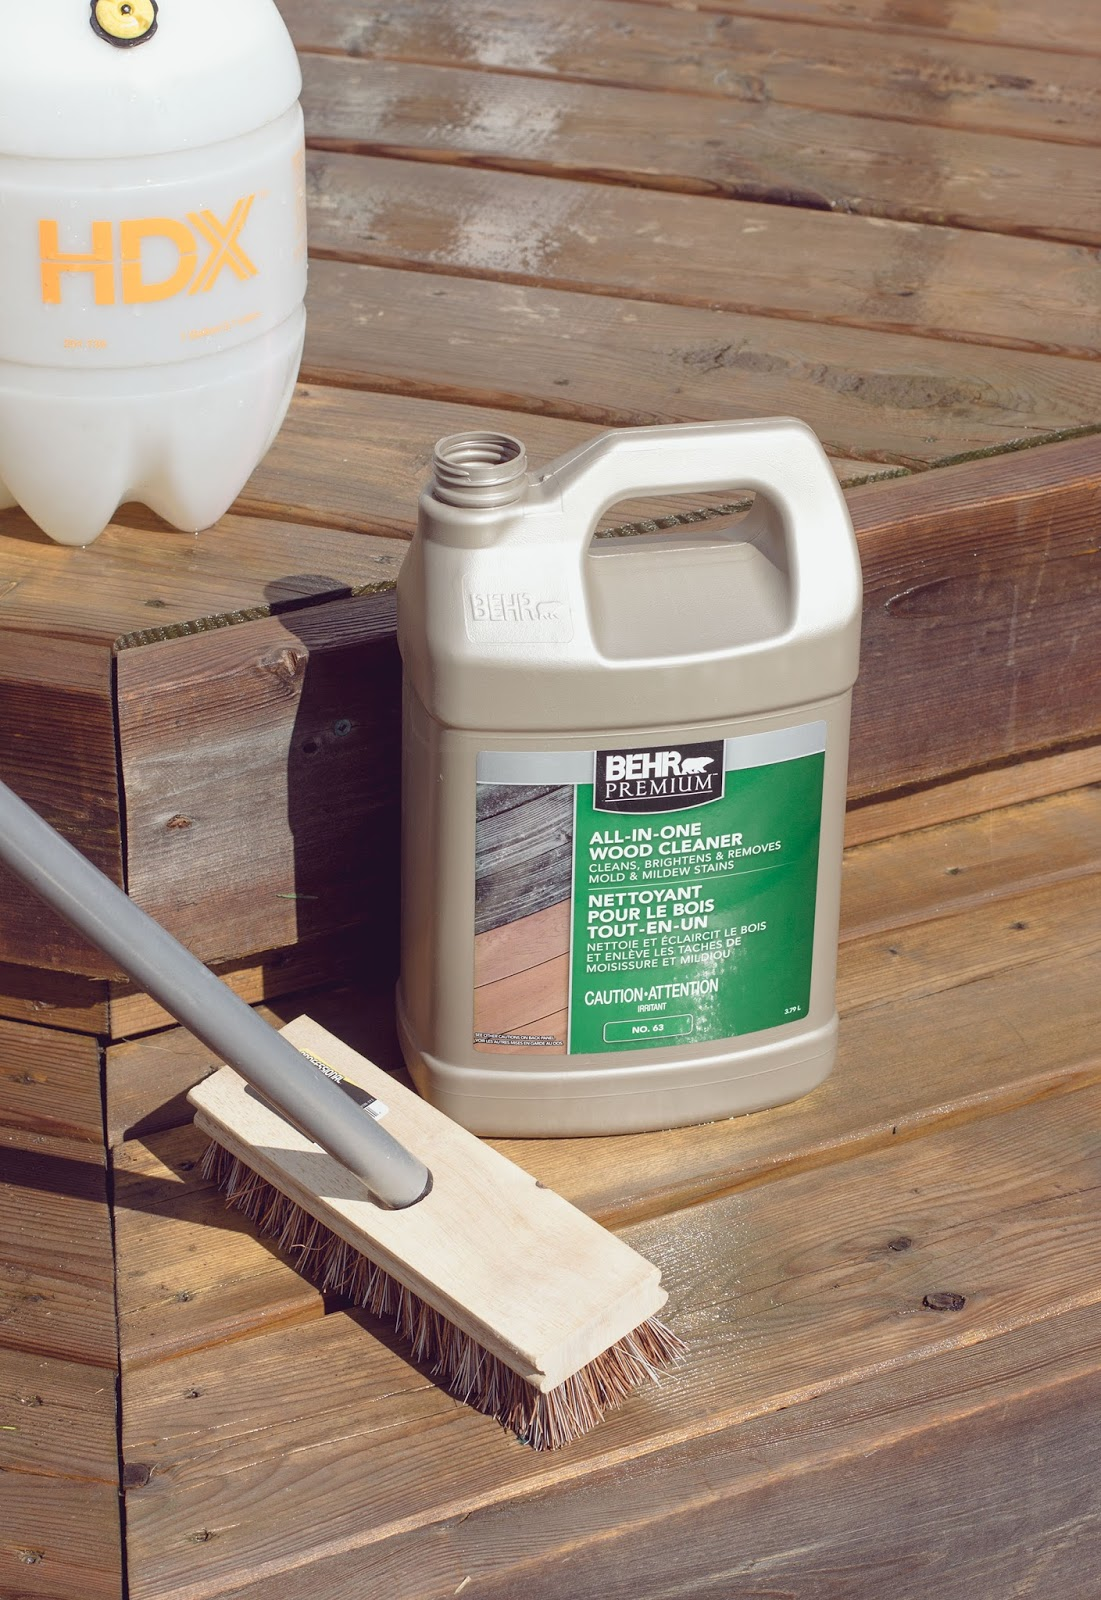 Diy Deck Cleaner My Daily Randomness Hdblogsquad How To Clean